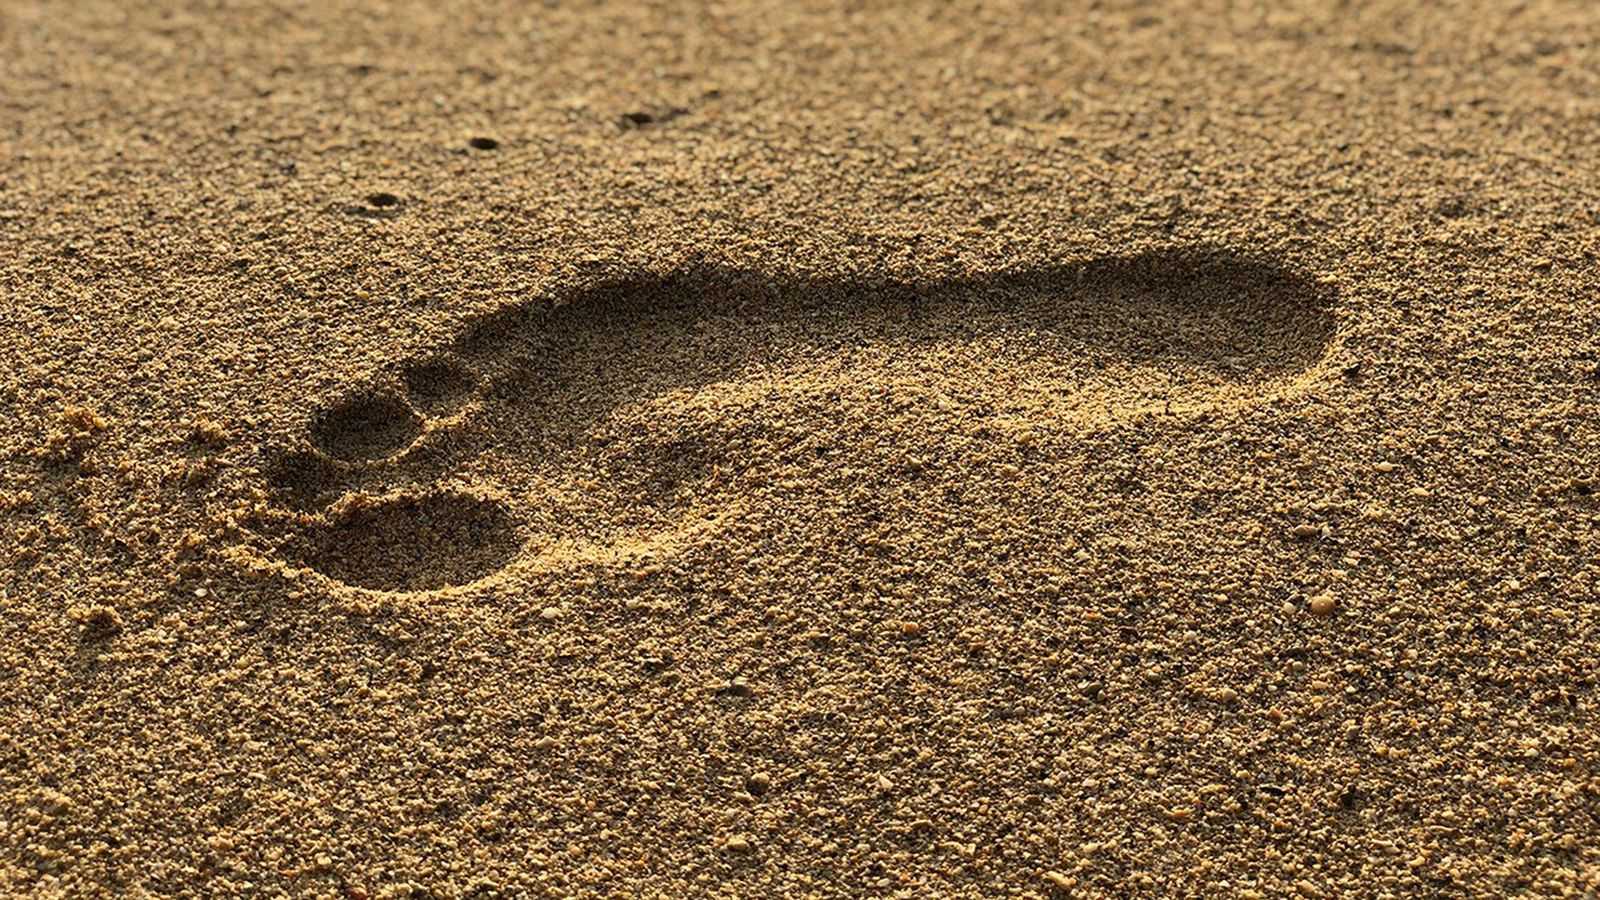 Human feet developed arches 3.5 million years ago - a 'key step' in evolution